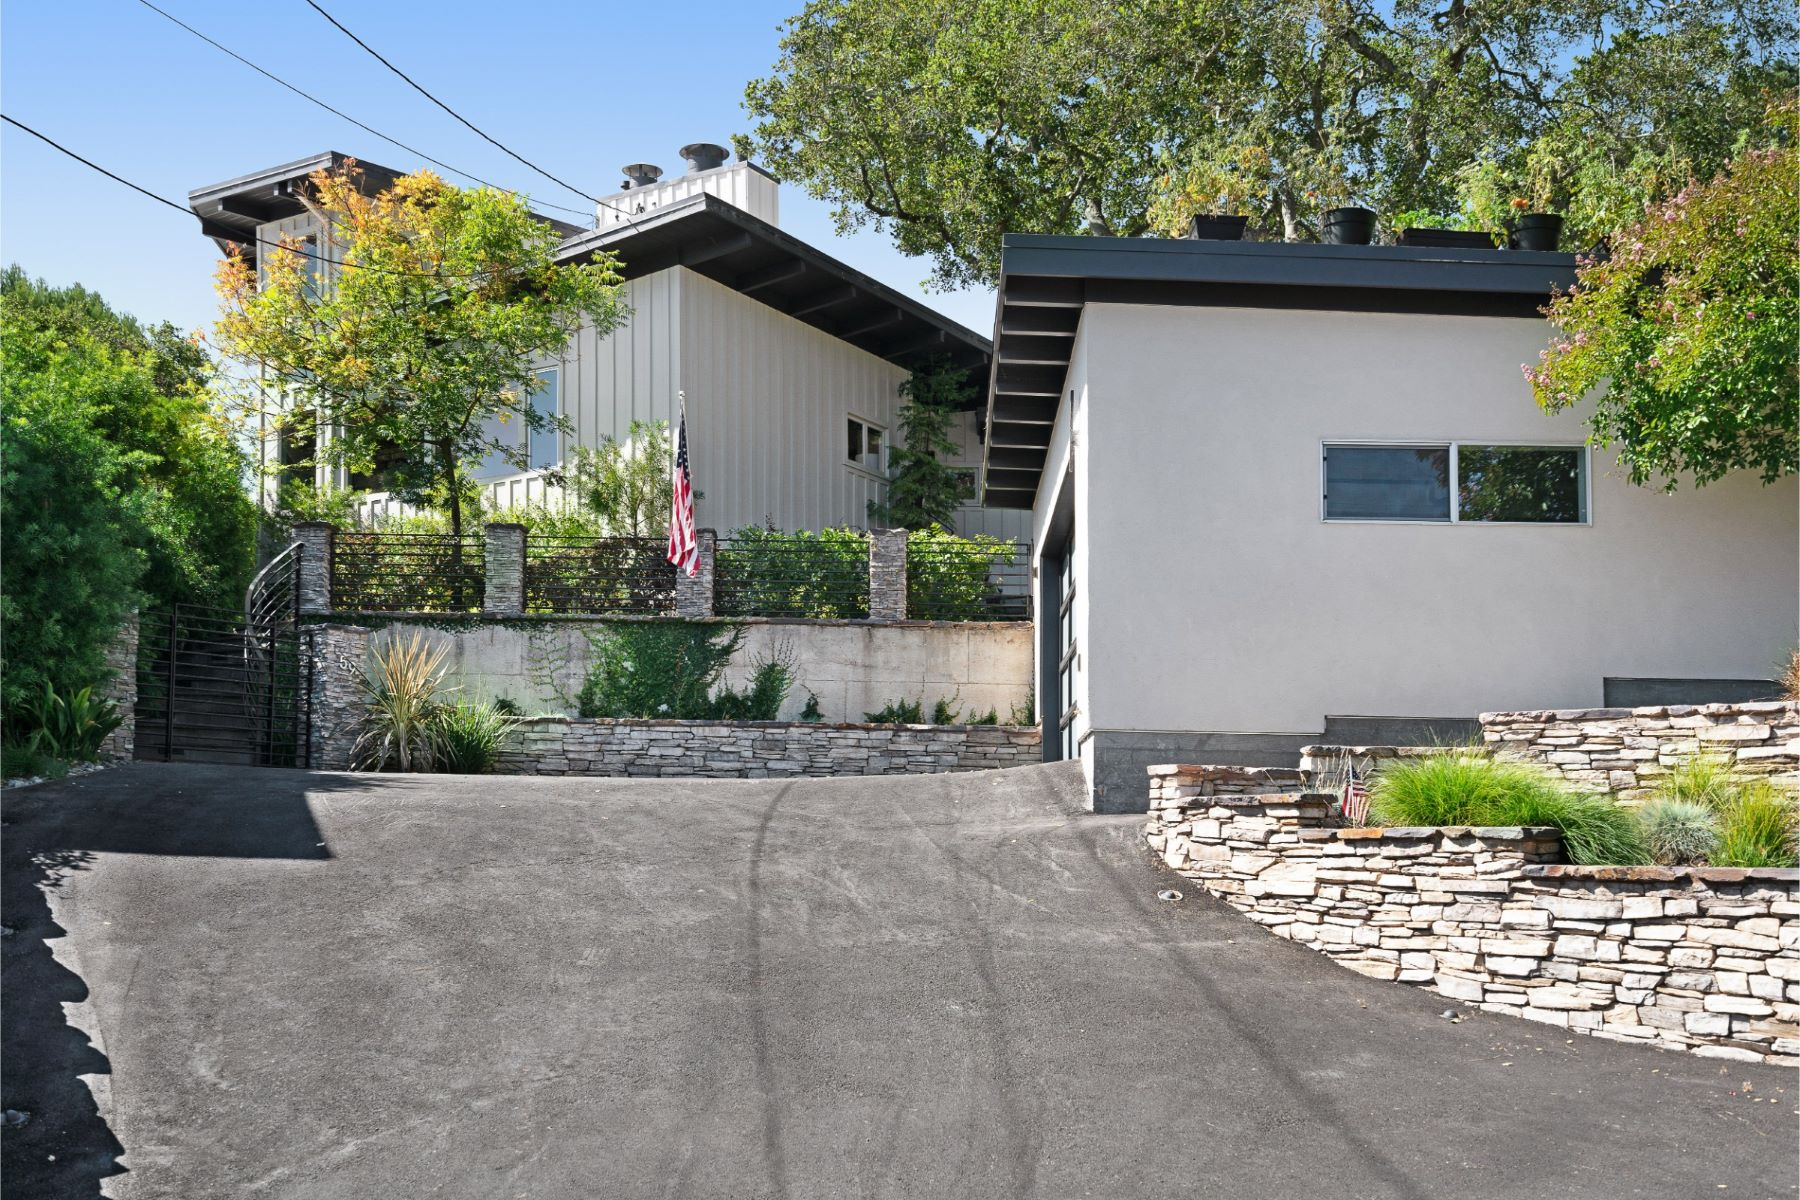 Single Family Home for Active at So Many Extras! 59 Northam Avenue San Carlos, California 94070 United States